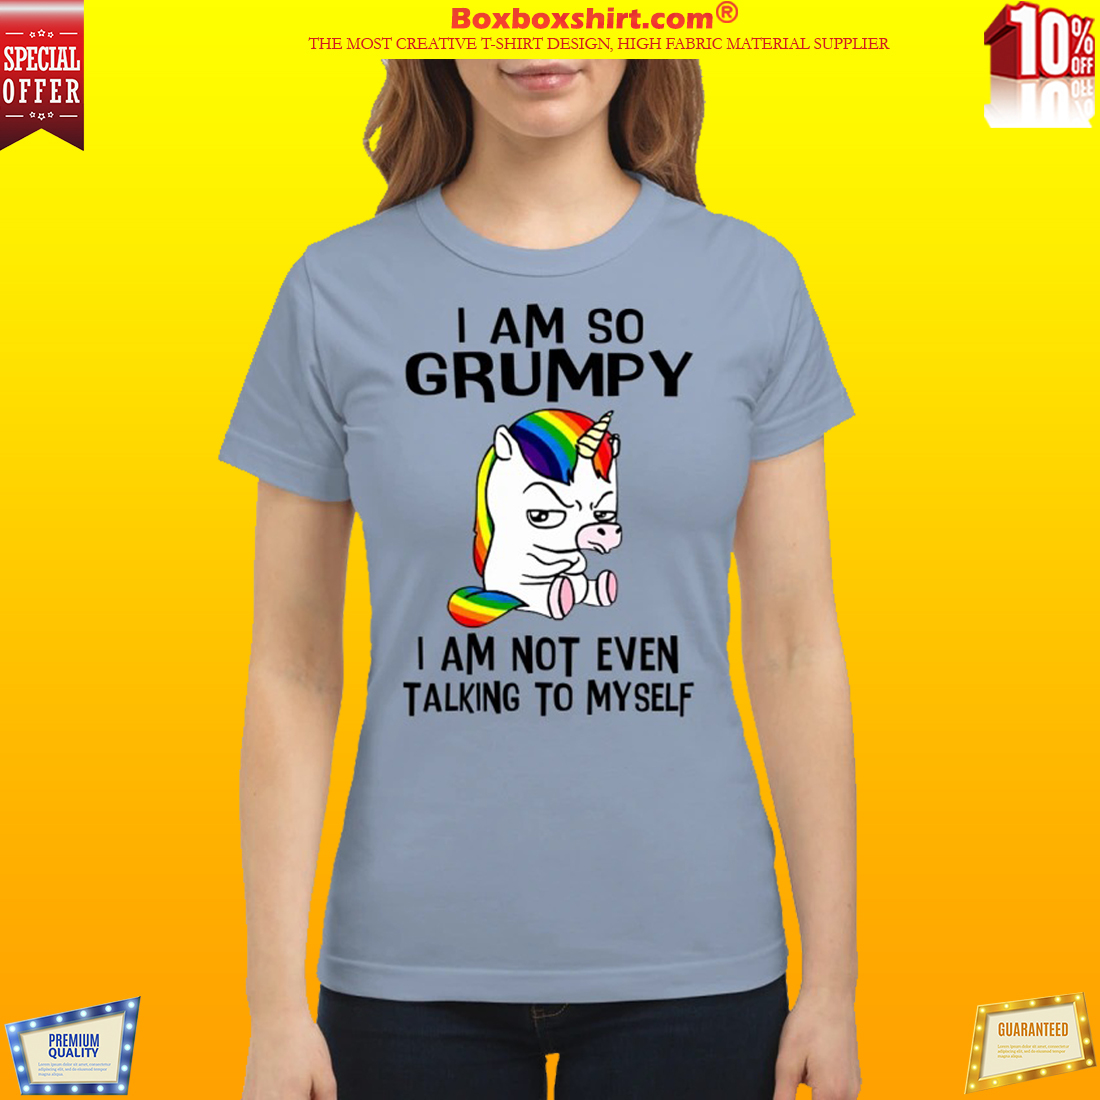 Unicorn I am so grumpy I am not even talking to myself classic shirt